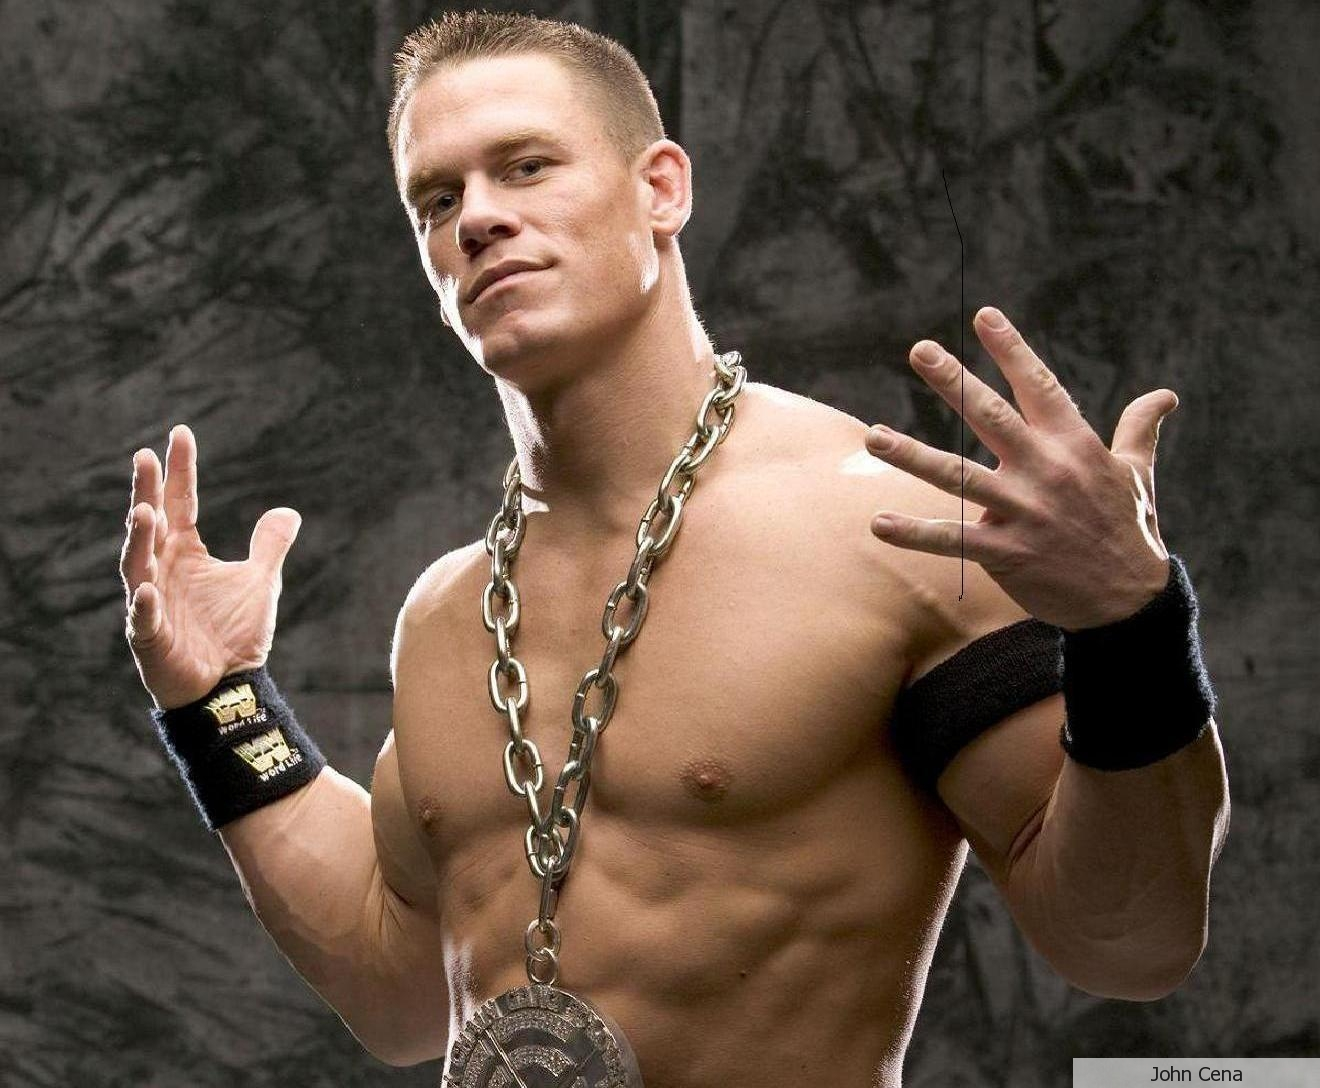 Liz Cena thinks John Cena was cheating on her. Um, so?